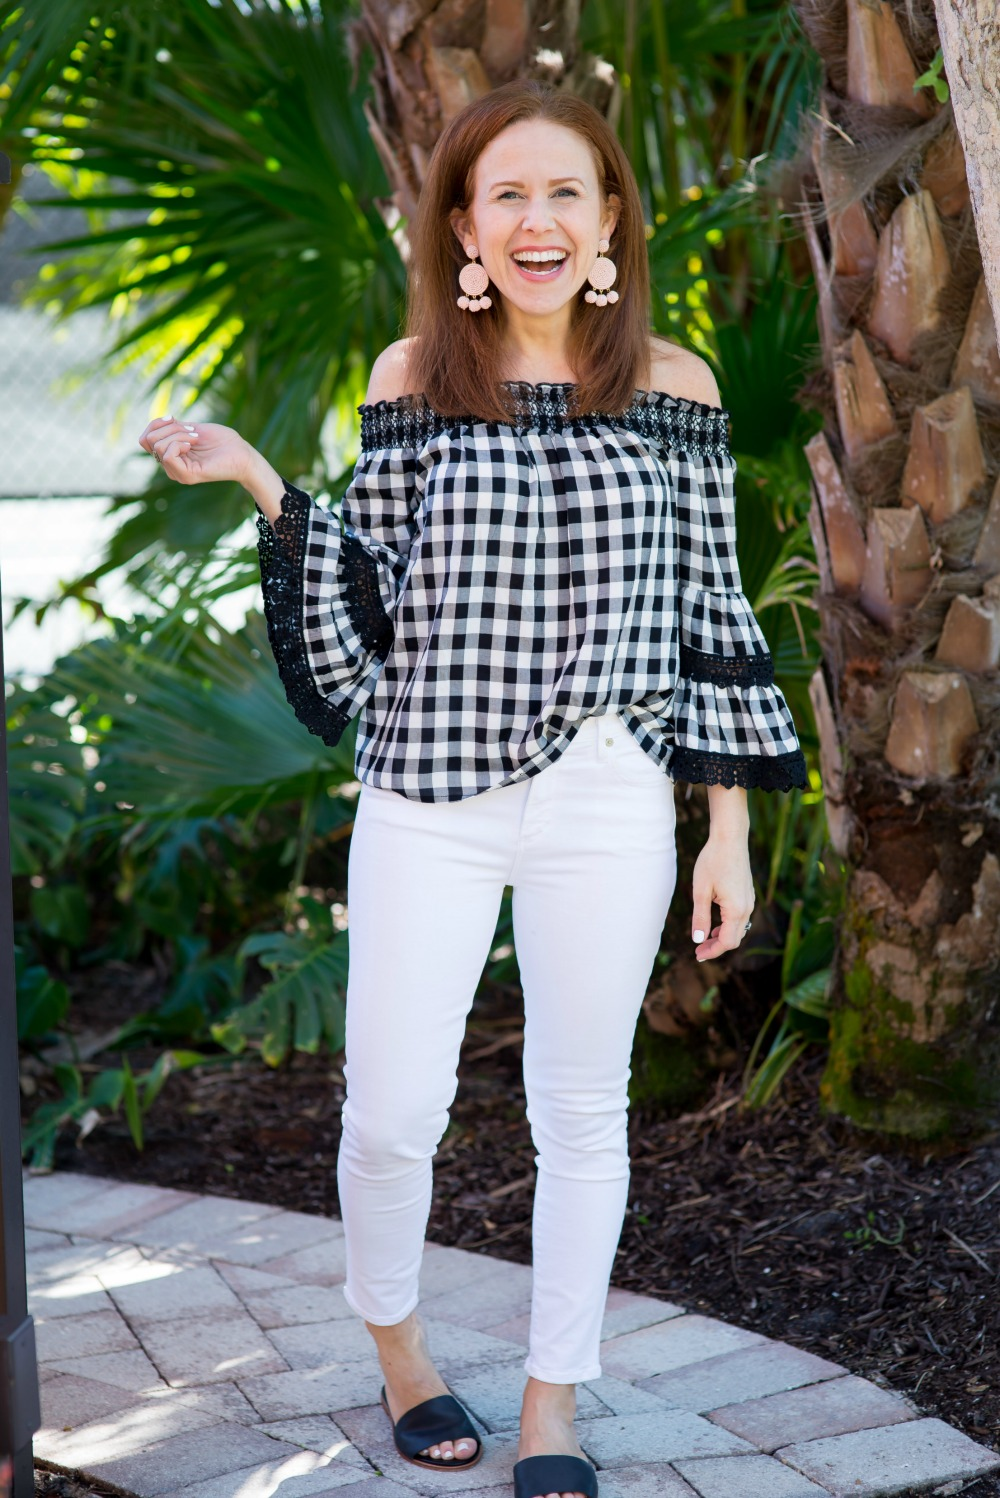 Gingham off the shoulder top for spring // the modern savvy